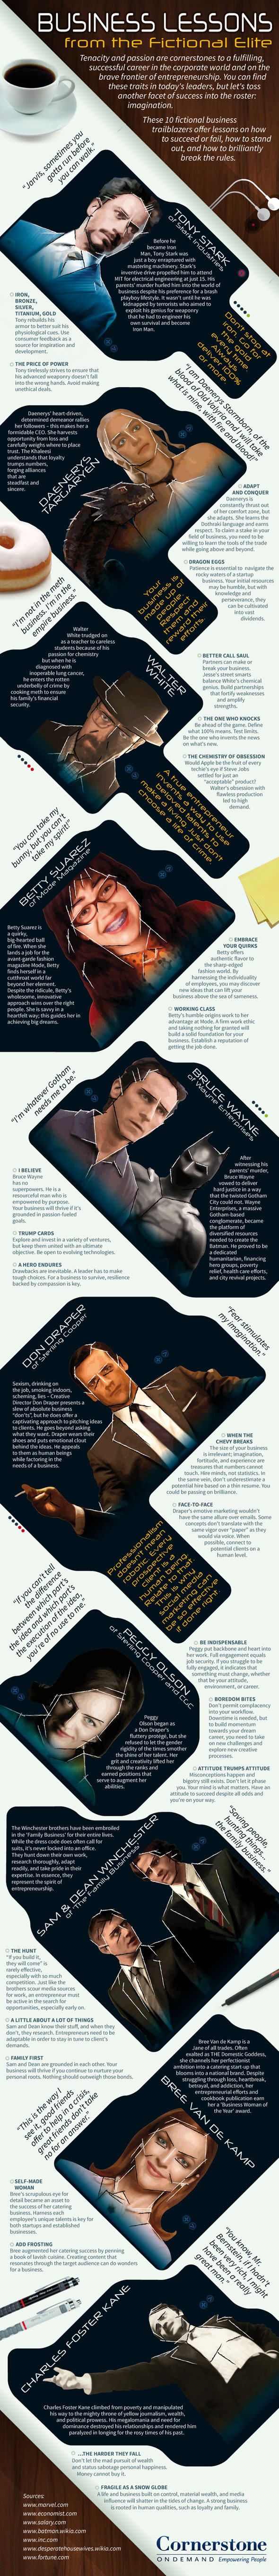 Infographic: Business Lessons from the Fictional Elite